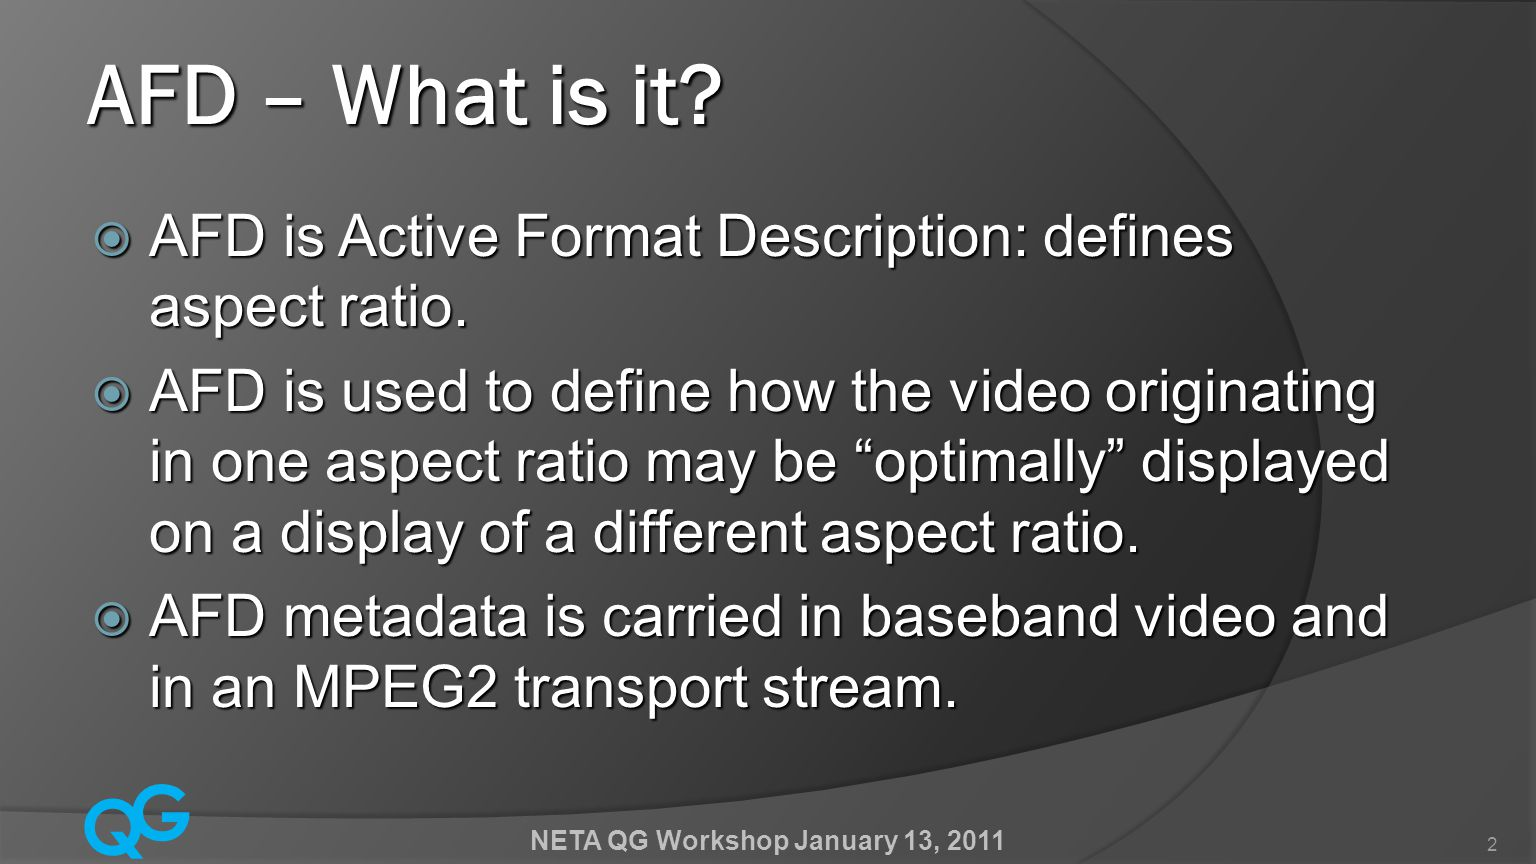 Q G NETA QG Workshop January 13, 2011 2  AFD is Active Format Description: defines aspect ratio.  AFD is used to define how the video originating in